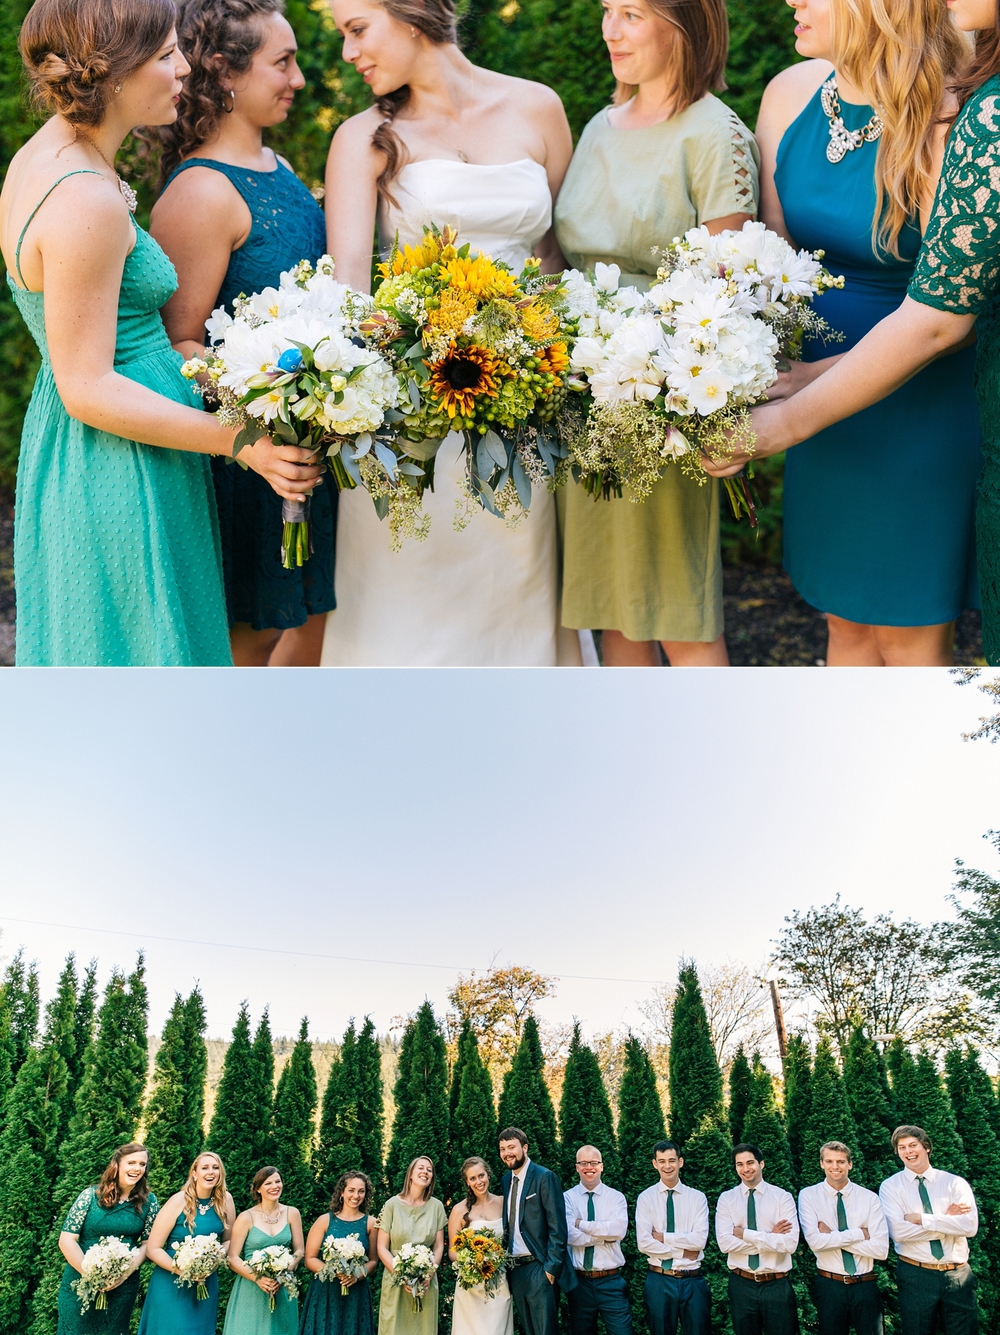 ashley vos photography seattle area wedding photographer_0758.jpg